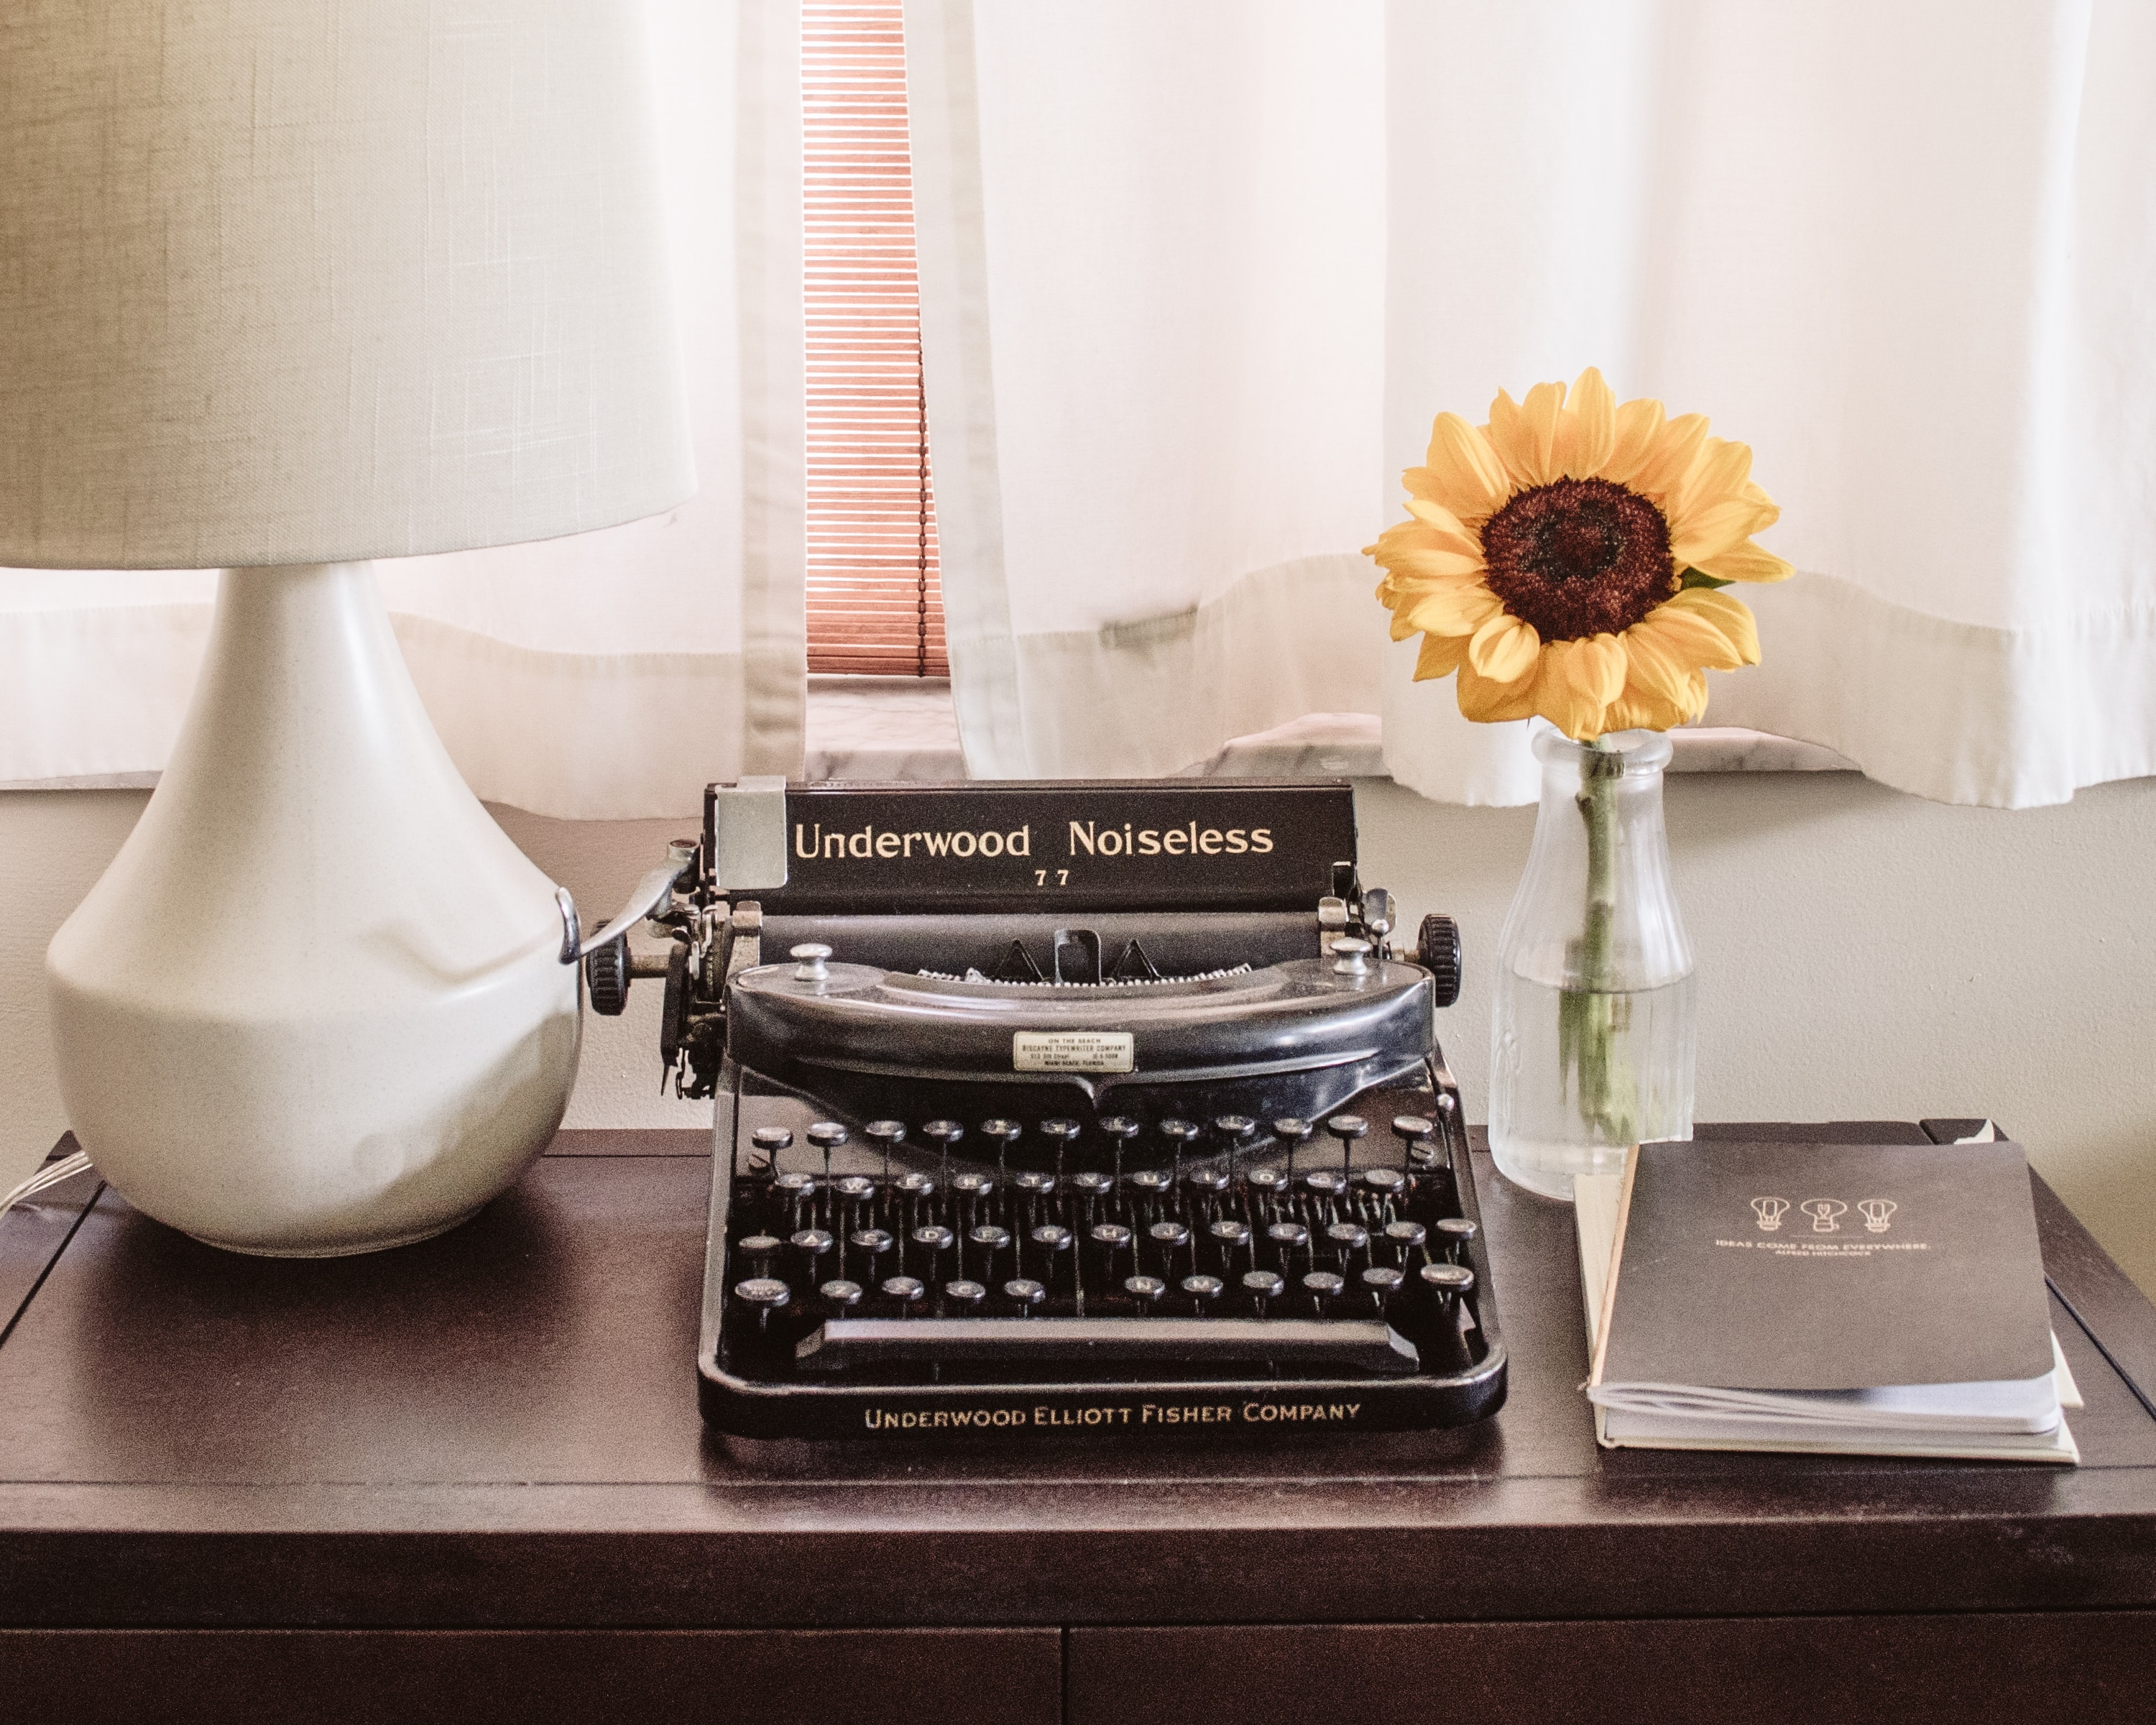 how to write a novel resources. Photo by Debby Hudson on Unsplash